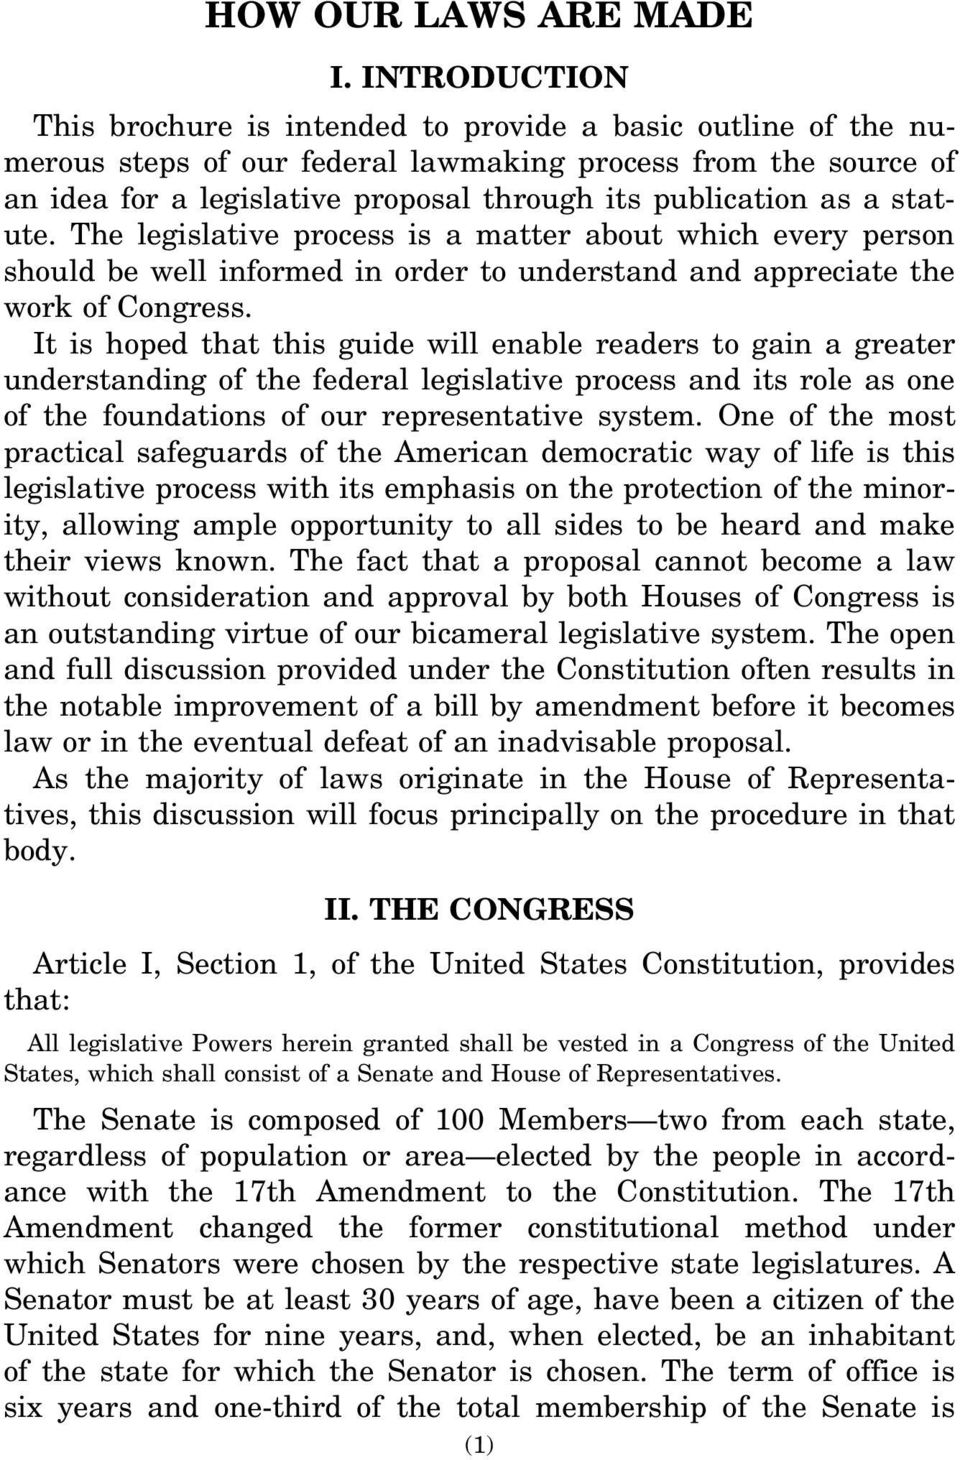 as a statute. The legislative process is a matter about which every person should be well informed in order to understand and appreciate the work of Congress.